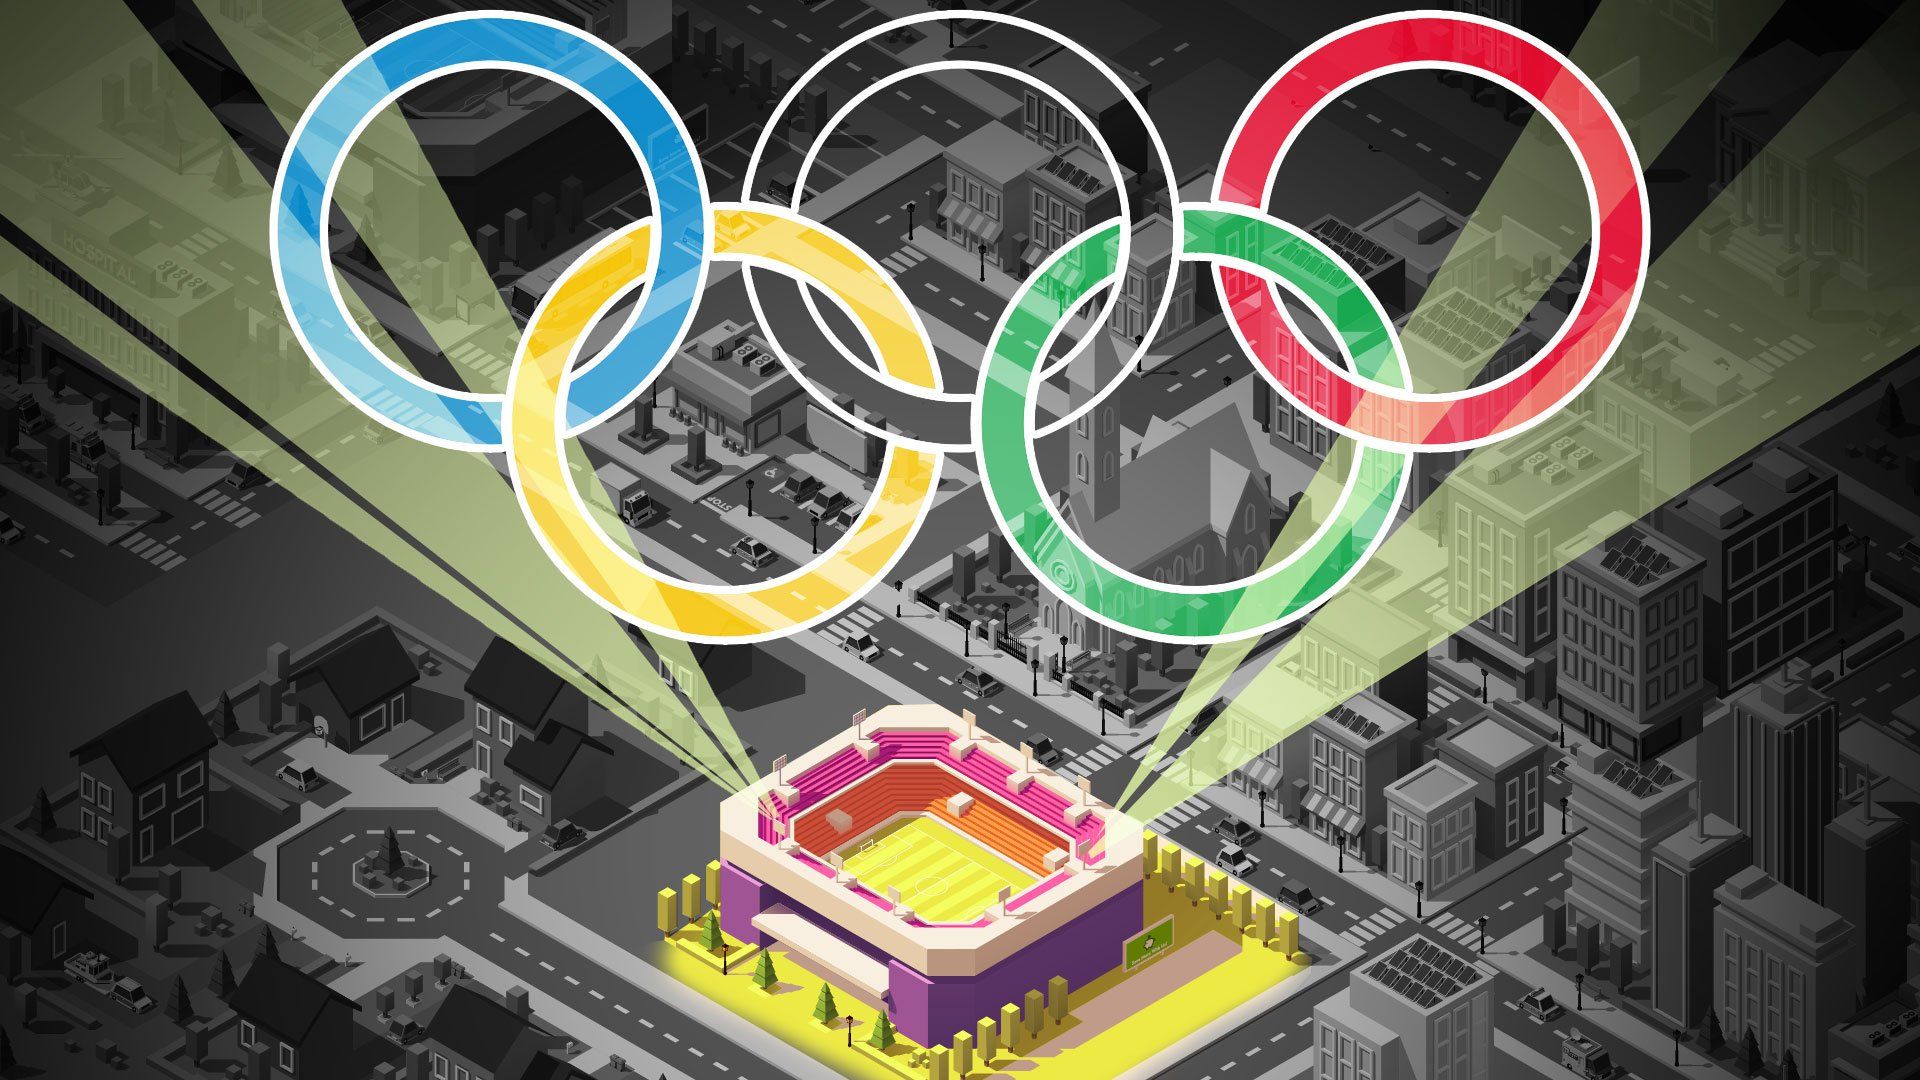 No one wants to host the Olympics anymore — will they go away? https://t.co/6oHqJwiIdC